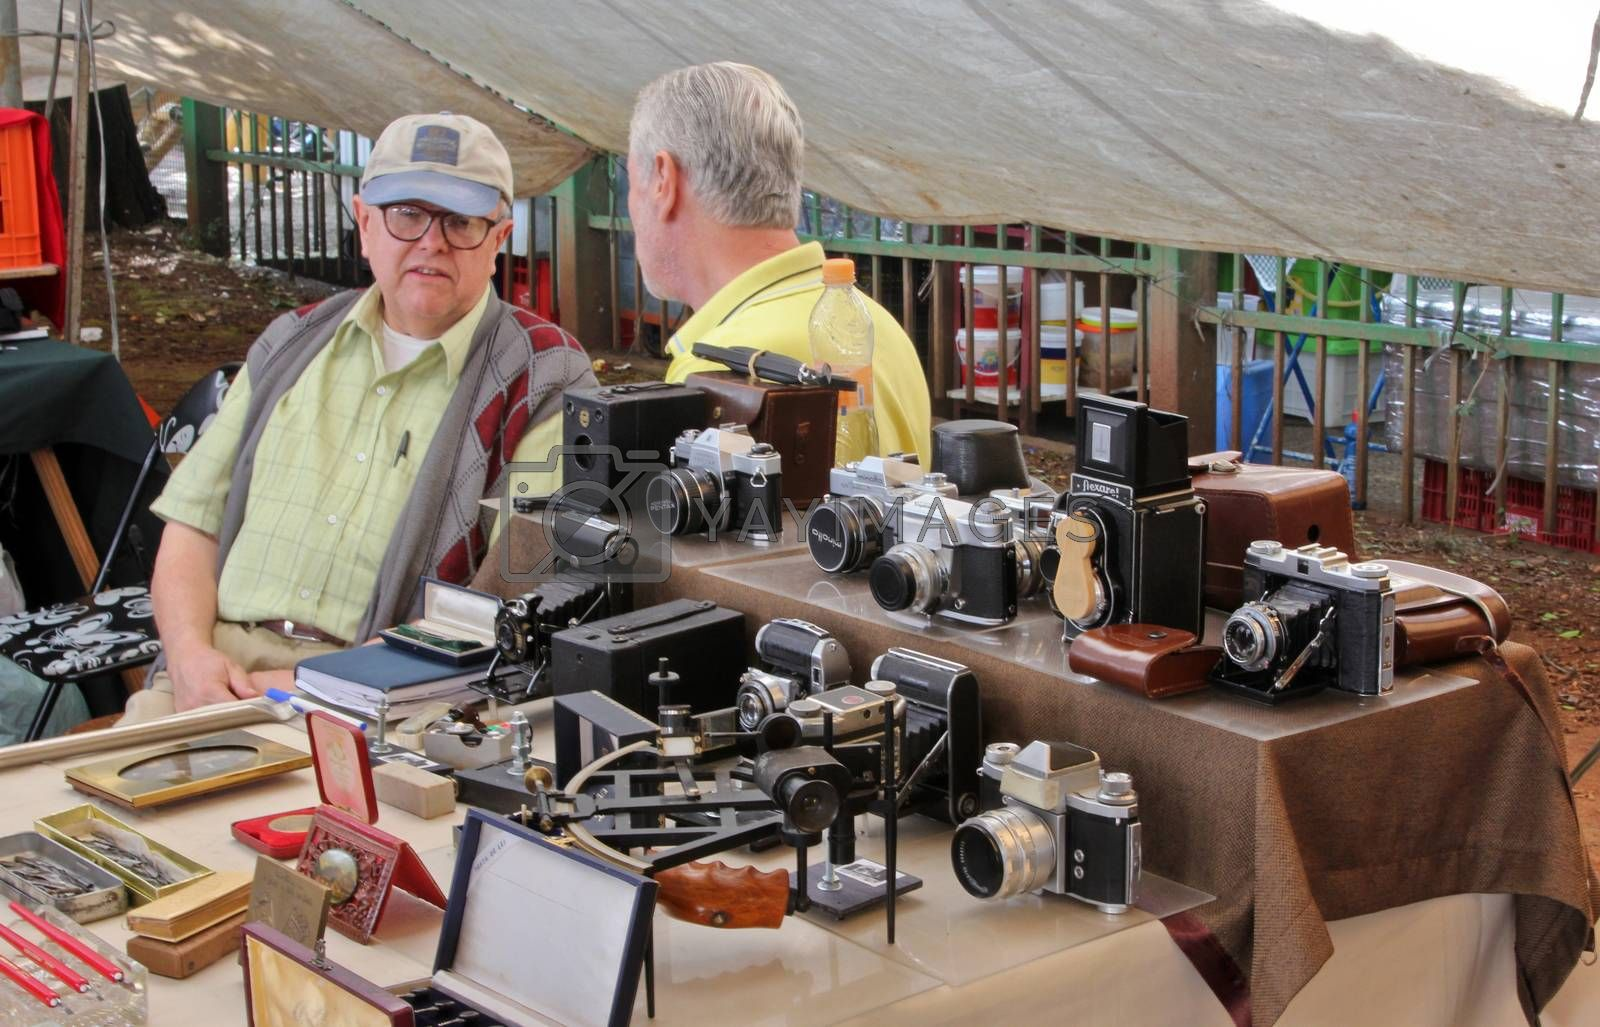 Sao Paulo, Brazil, July 18 2015: Unidentified elderly men in the traditional antique objects market that has been held all Saturdays in Benedito Calixto square in Sao Paulo Brazil.